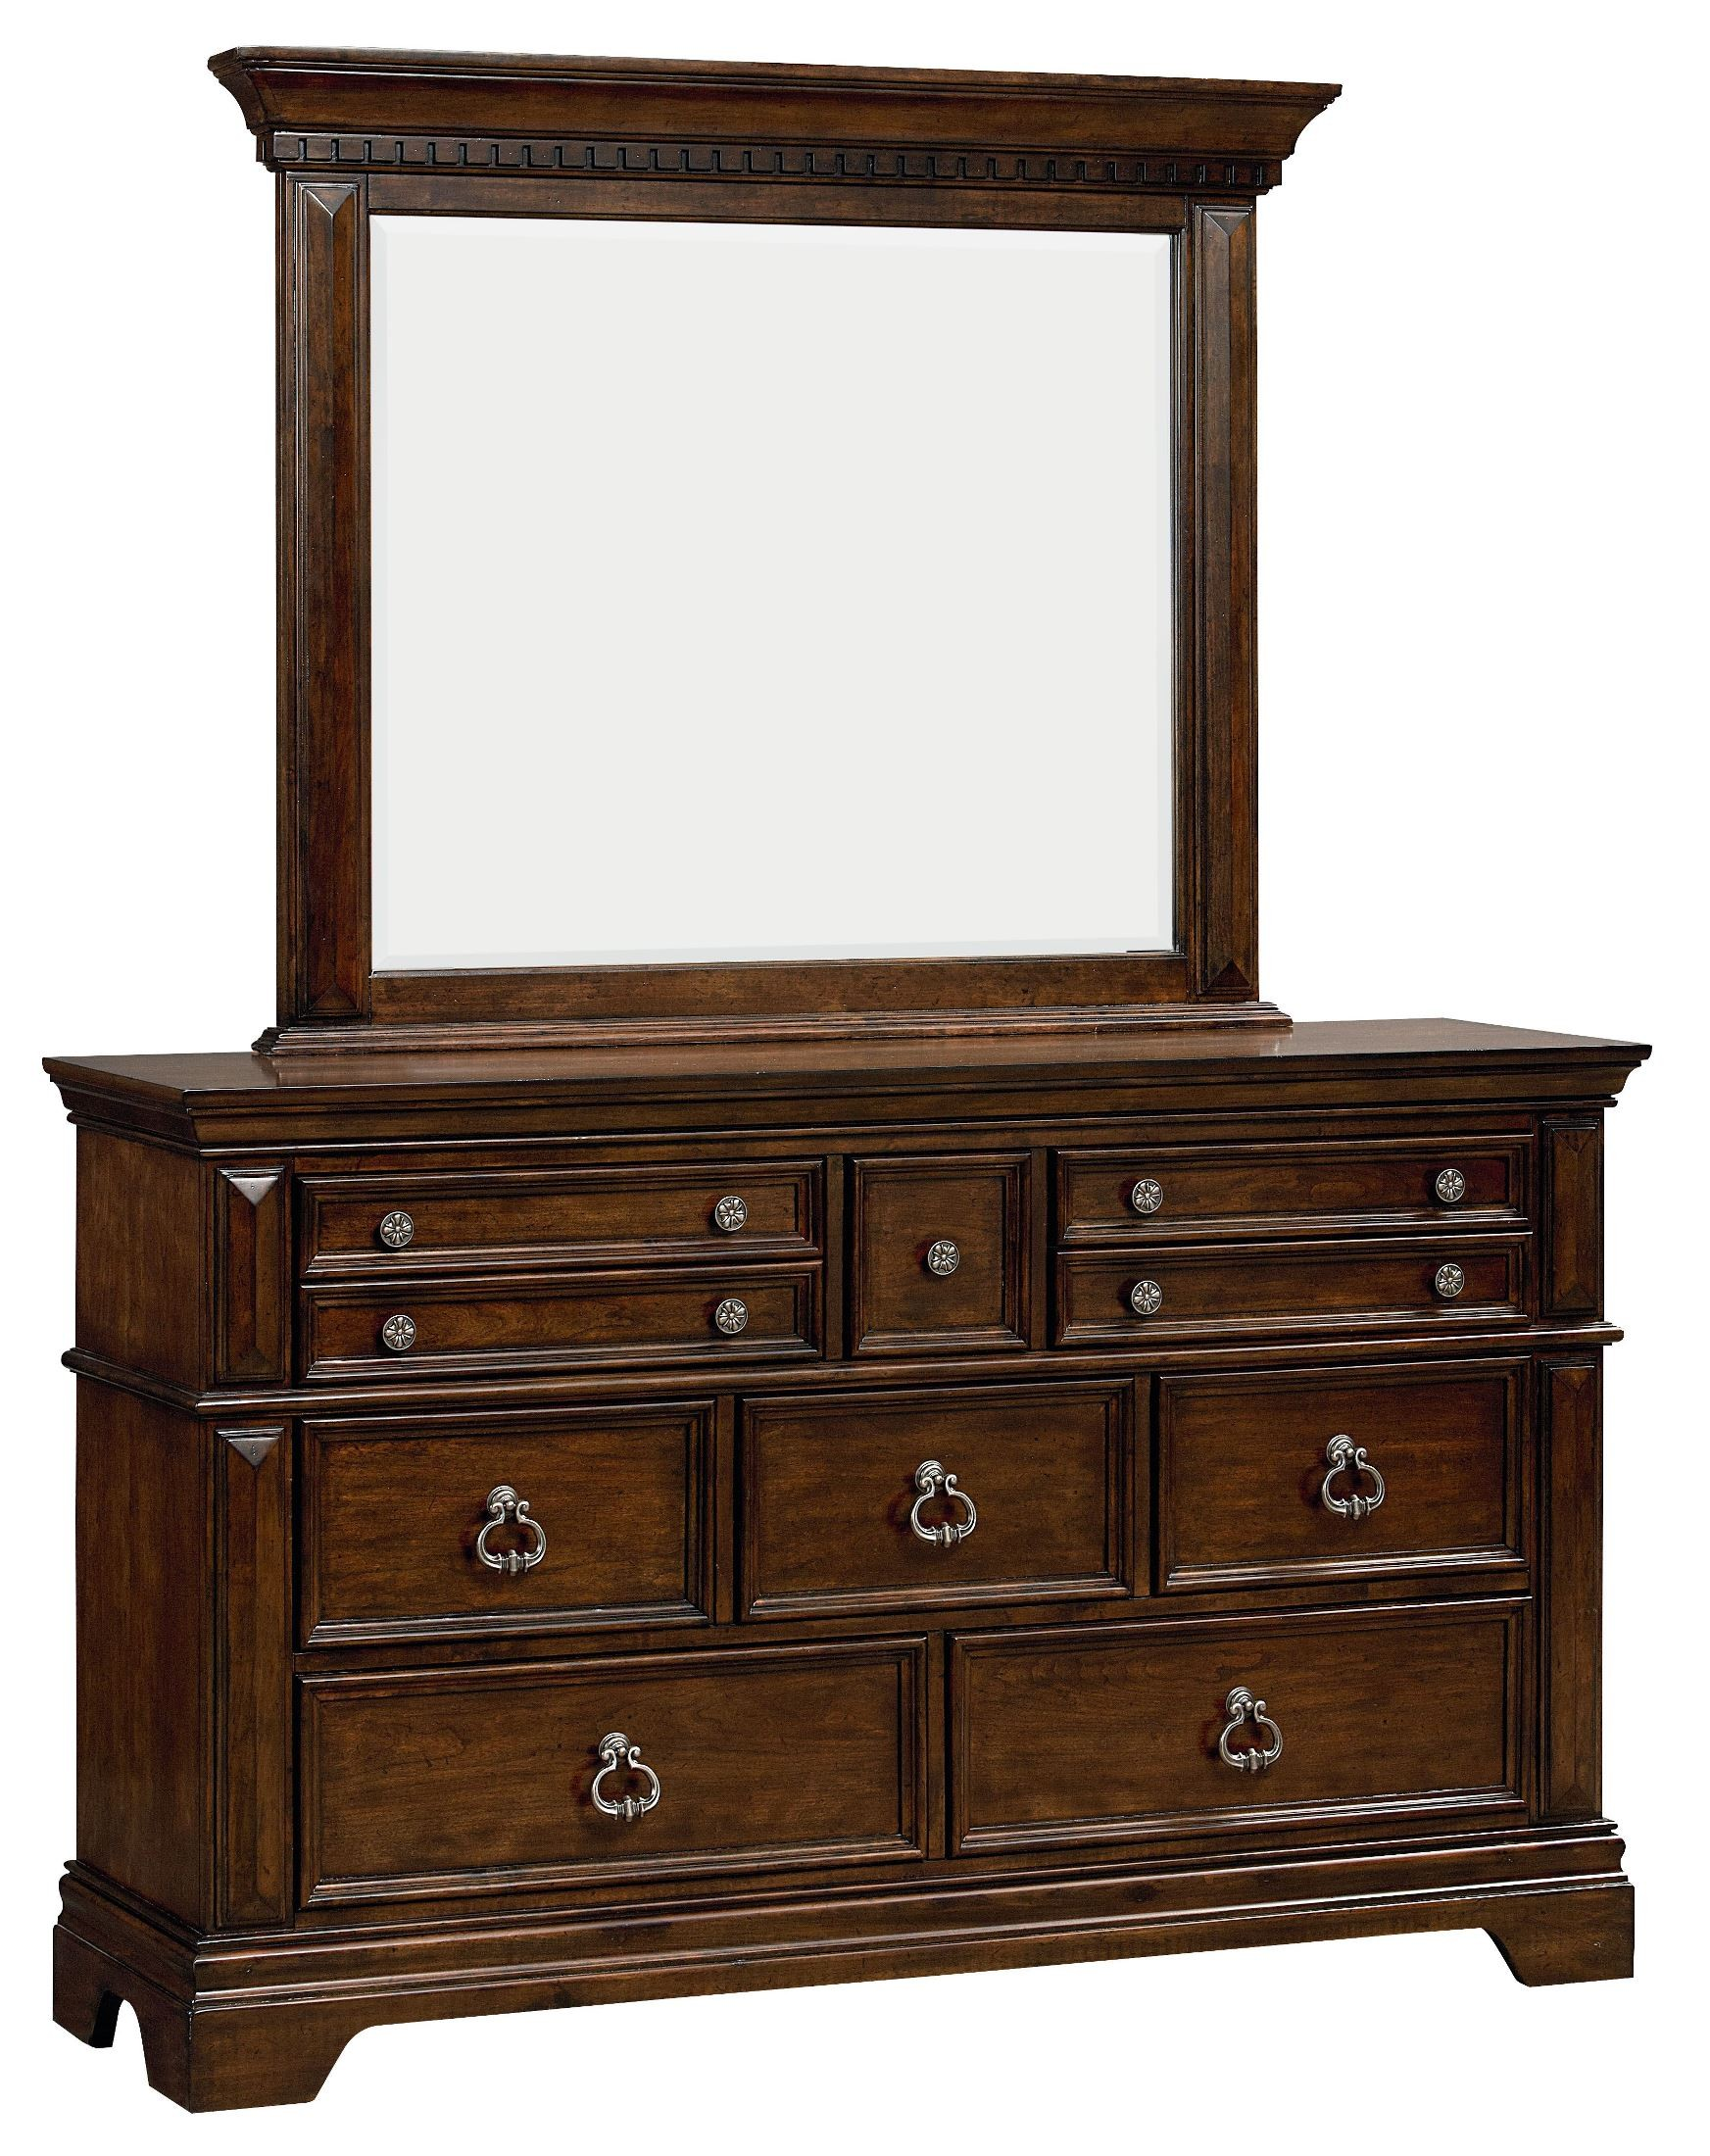 Charleston Burnished Tobacco Panel Bedroom Set 960 01 02